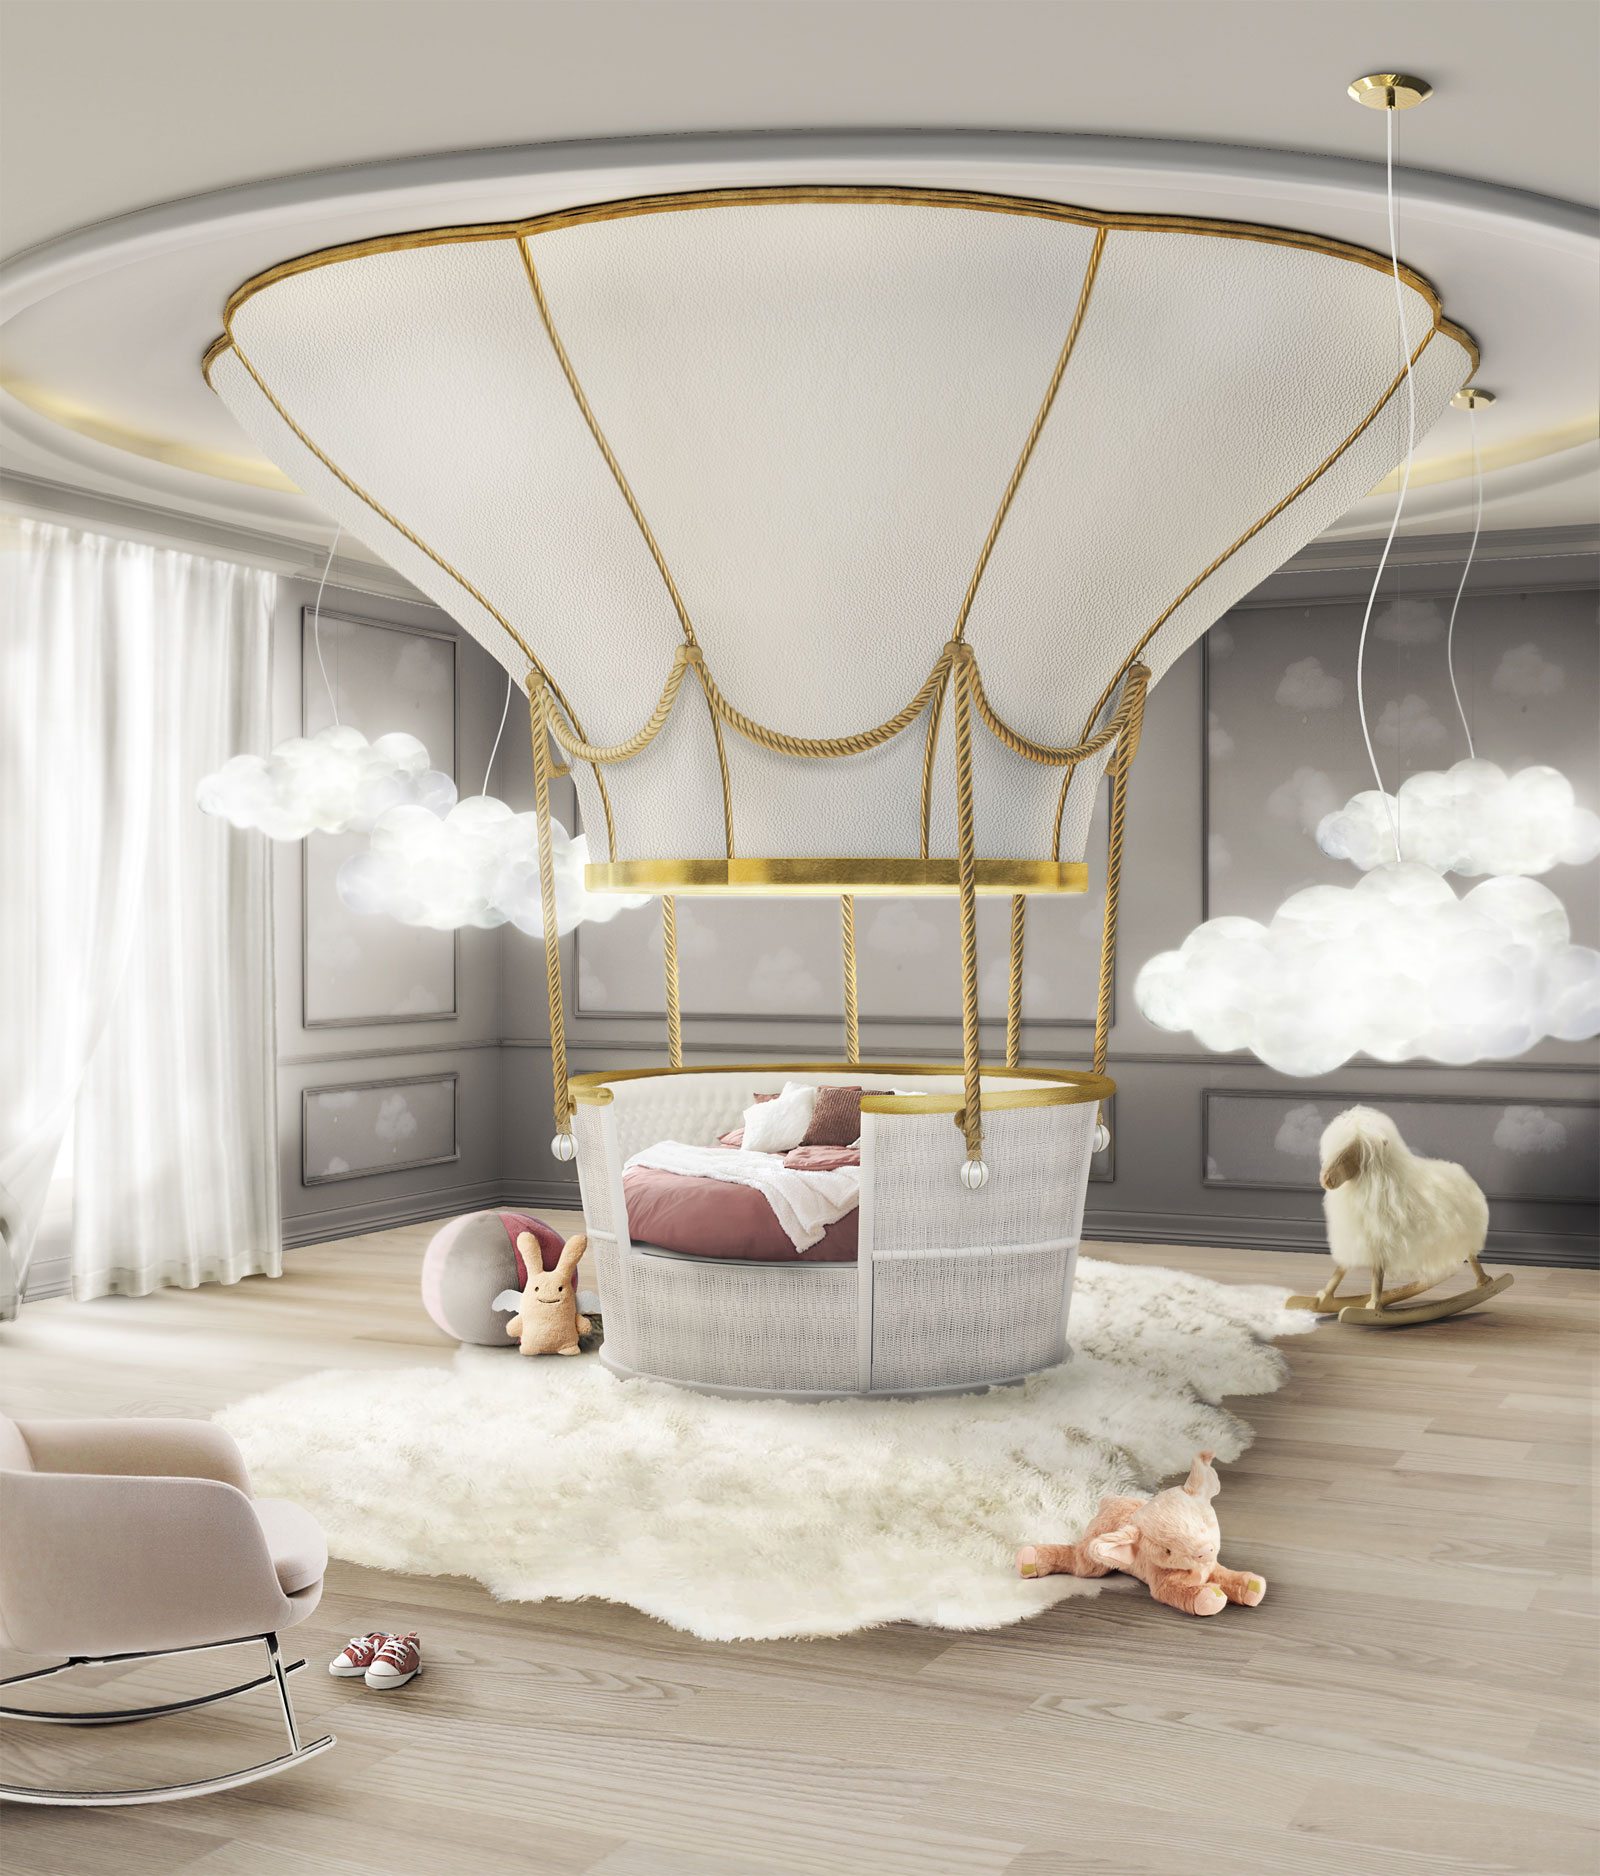 Three amazing beds for children that will make adults jealous for Children bedroom designs girls